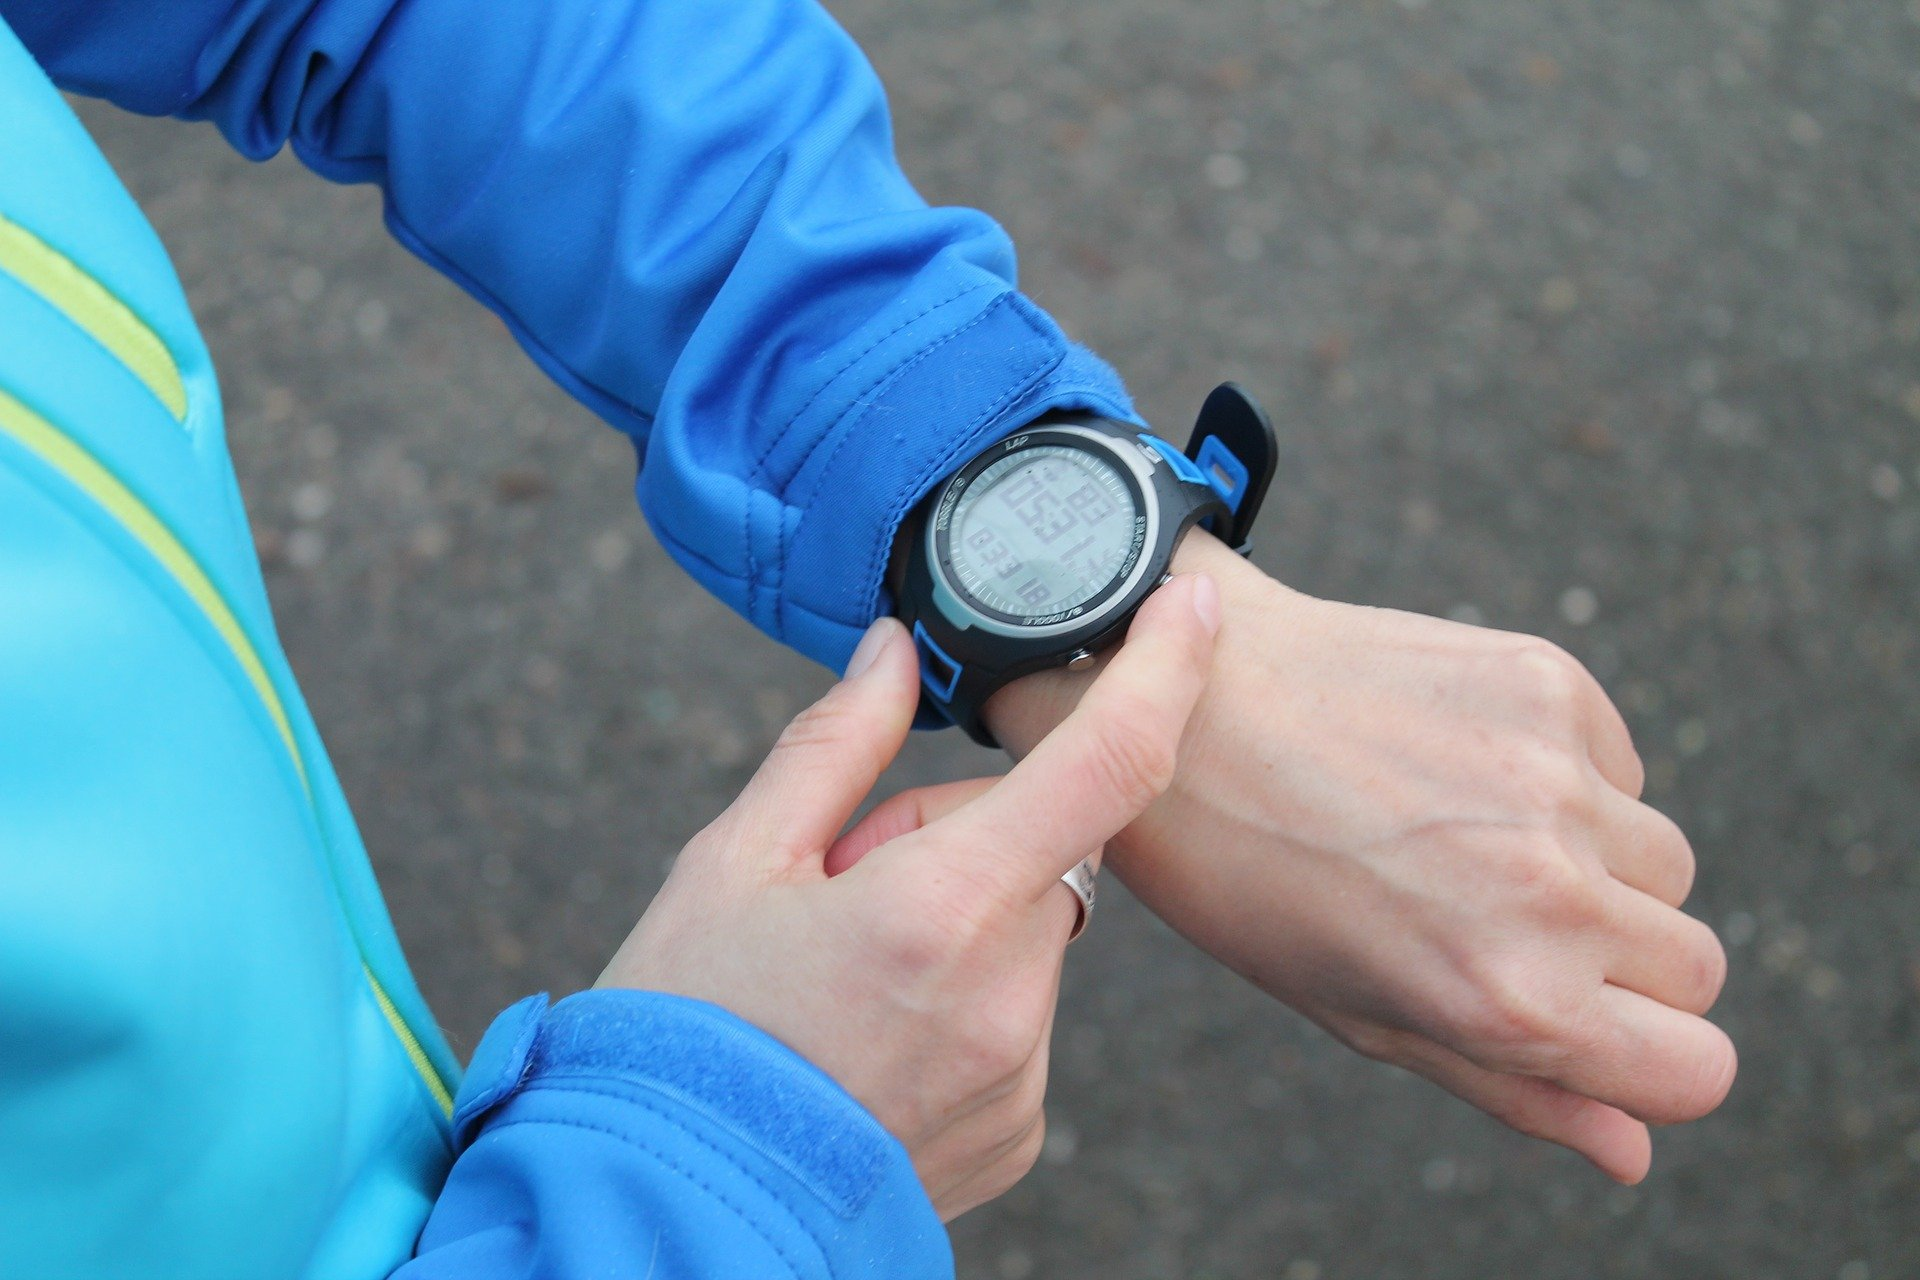 Marathon equipment | Running watch